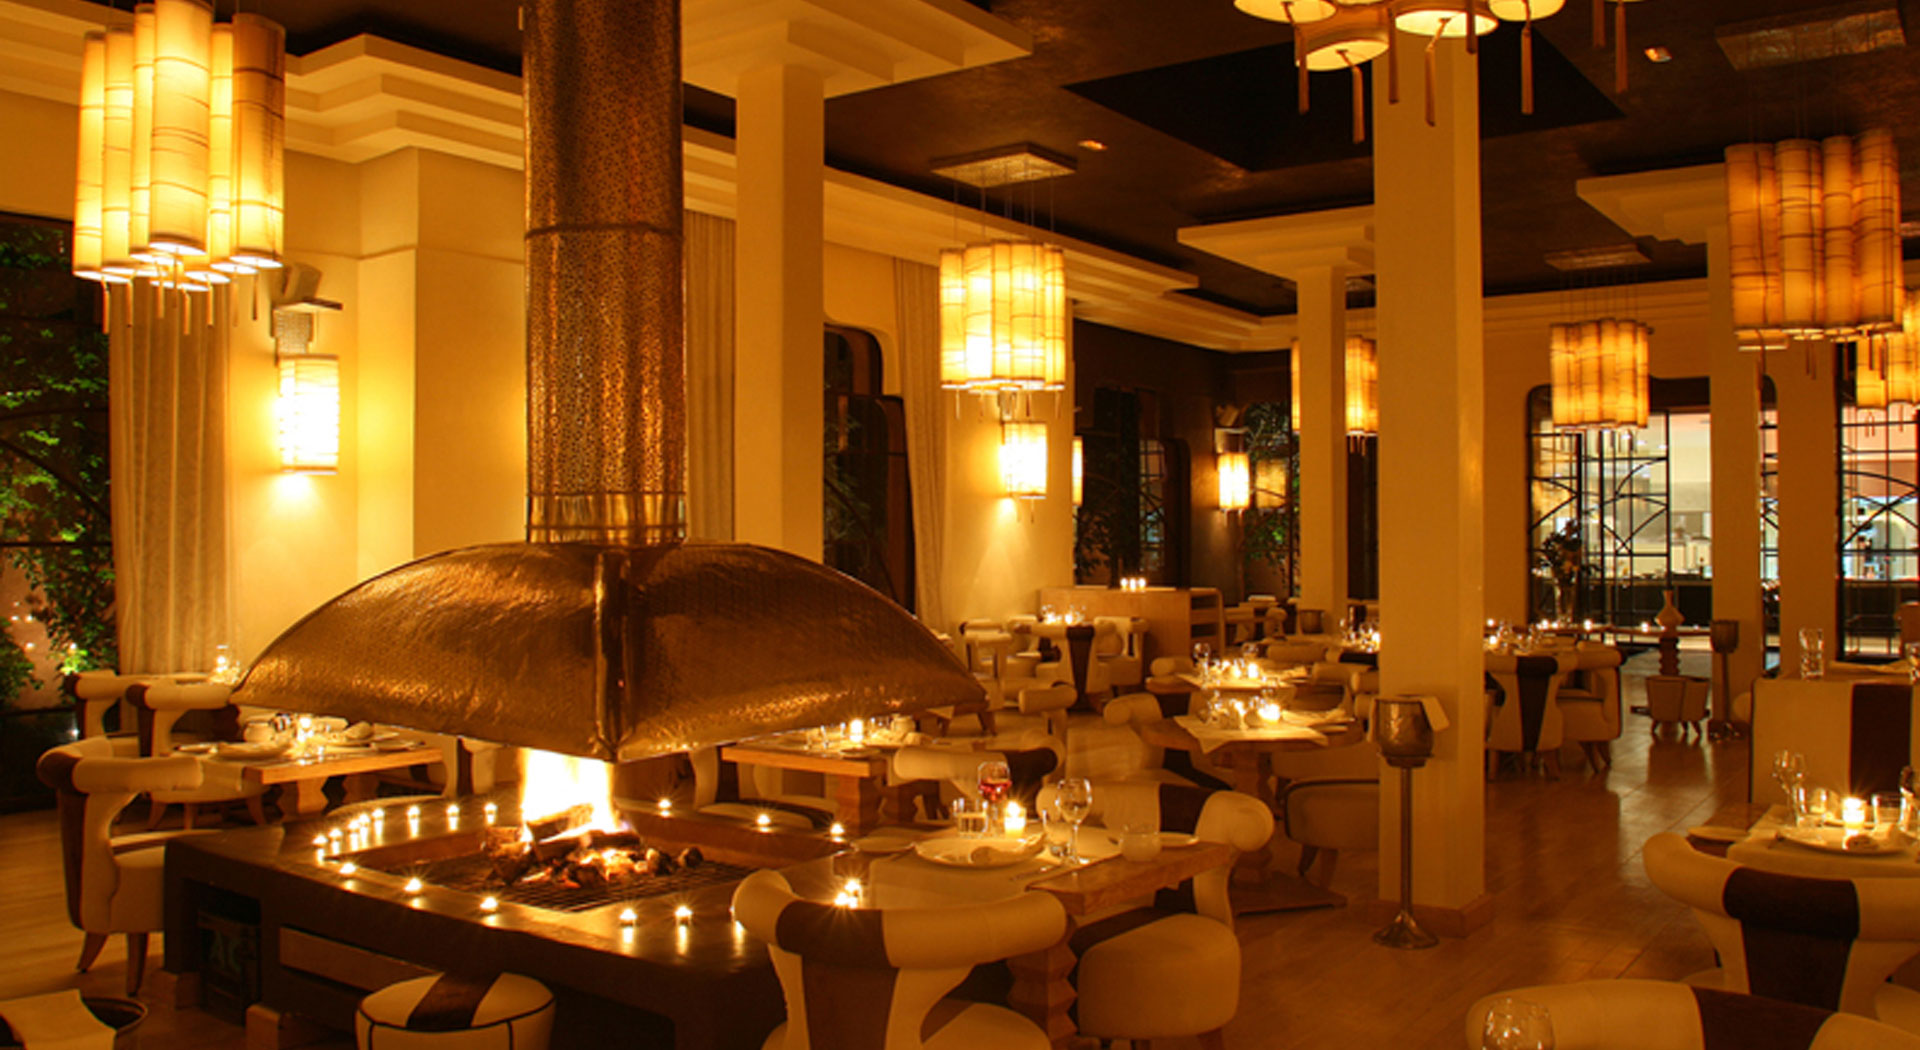 Le Crystal restaurant located in Marrakech with Mediterranean and Creative cuisine